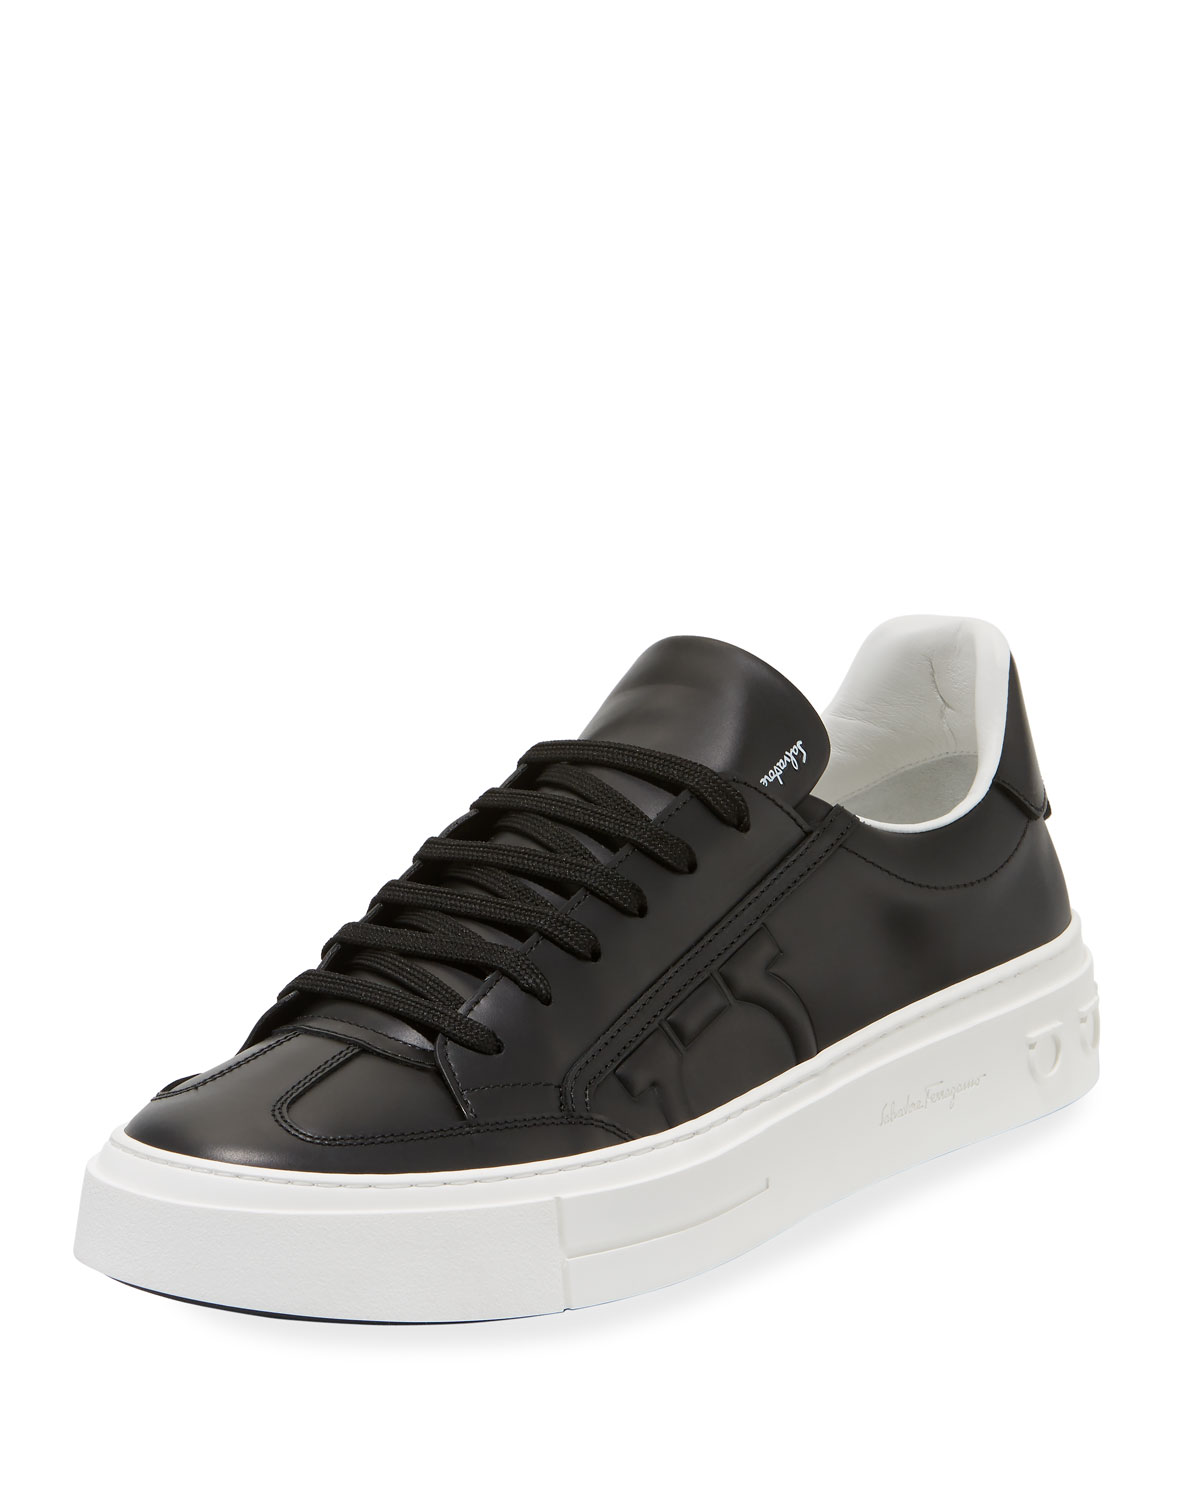 Borg Leather Low-Top Sneakers, Black